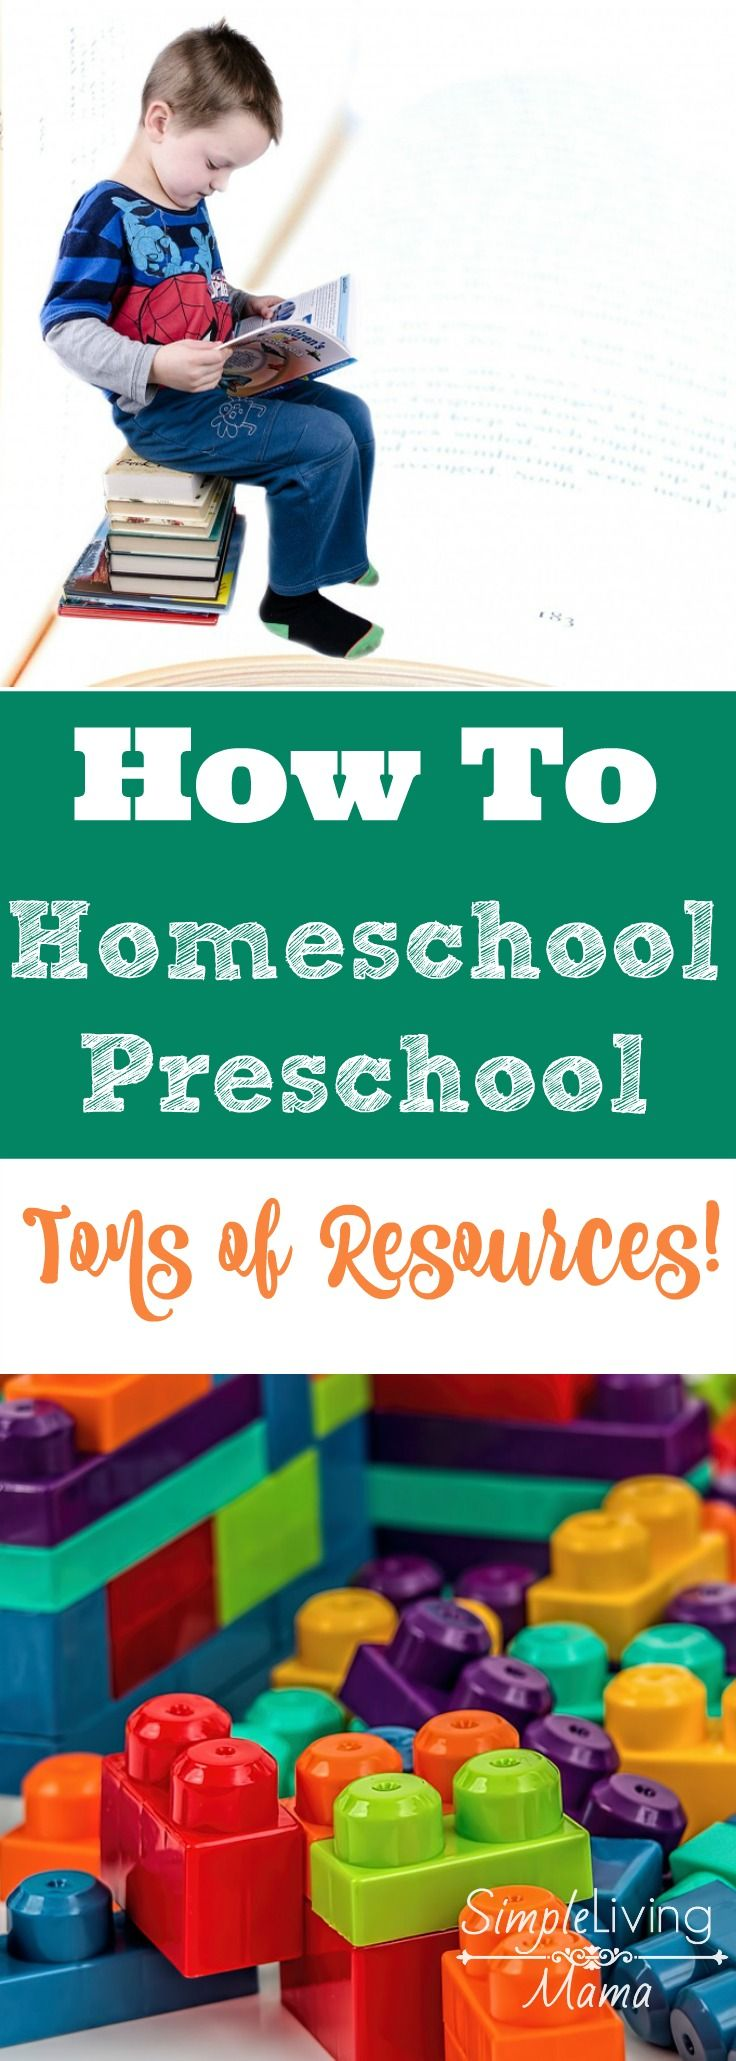 352 best Preschool at Home images on Pinterest | Preschool ...